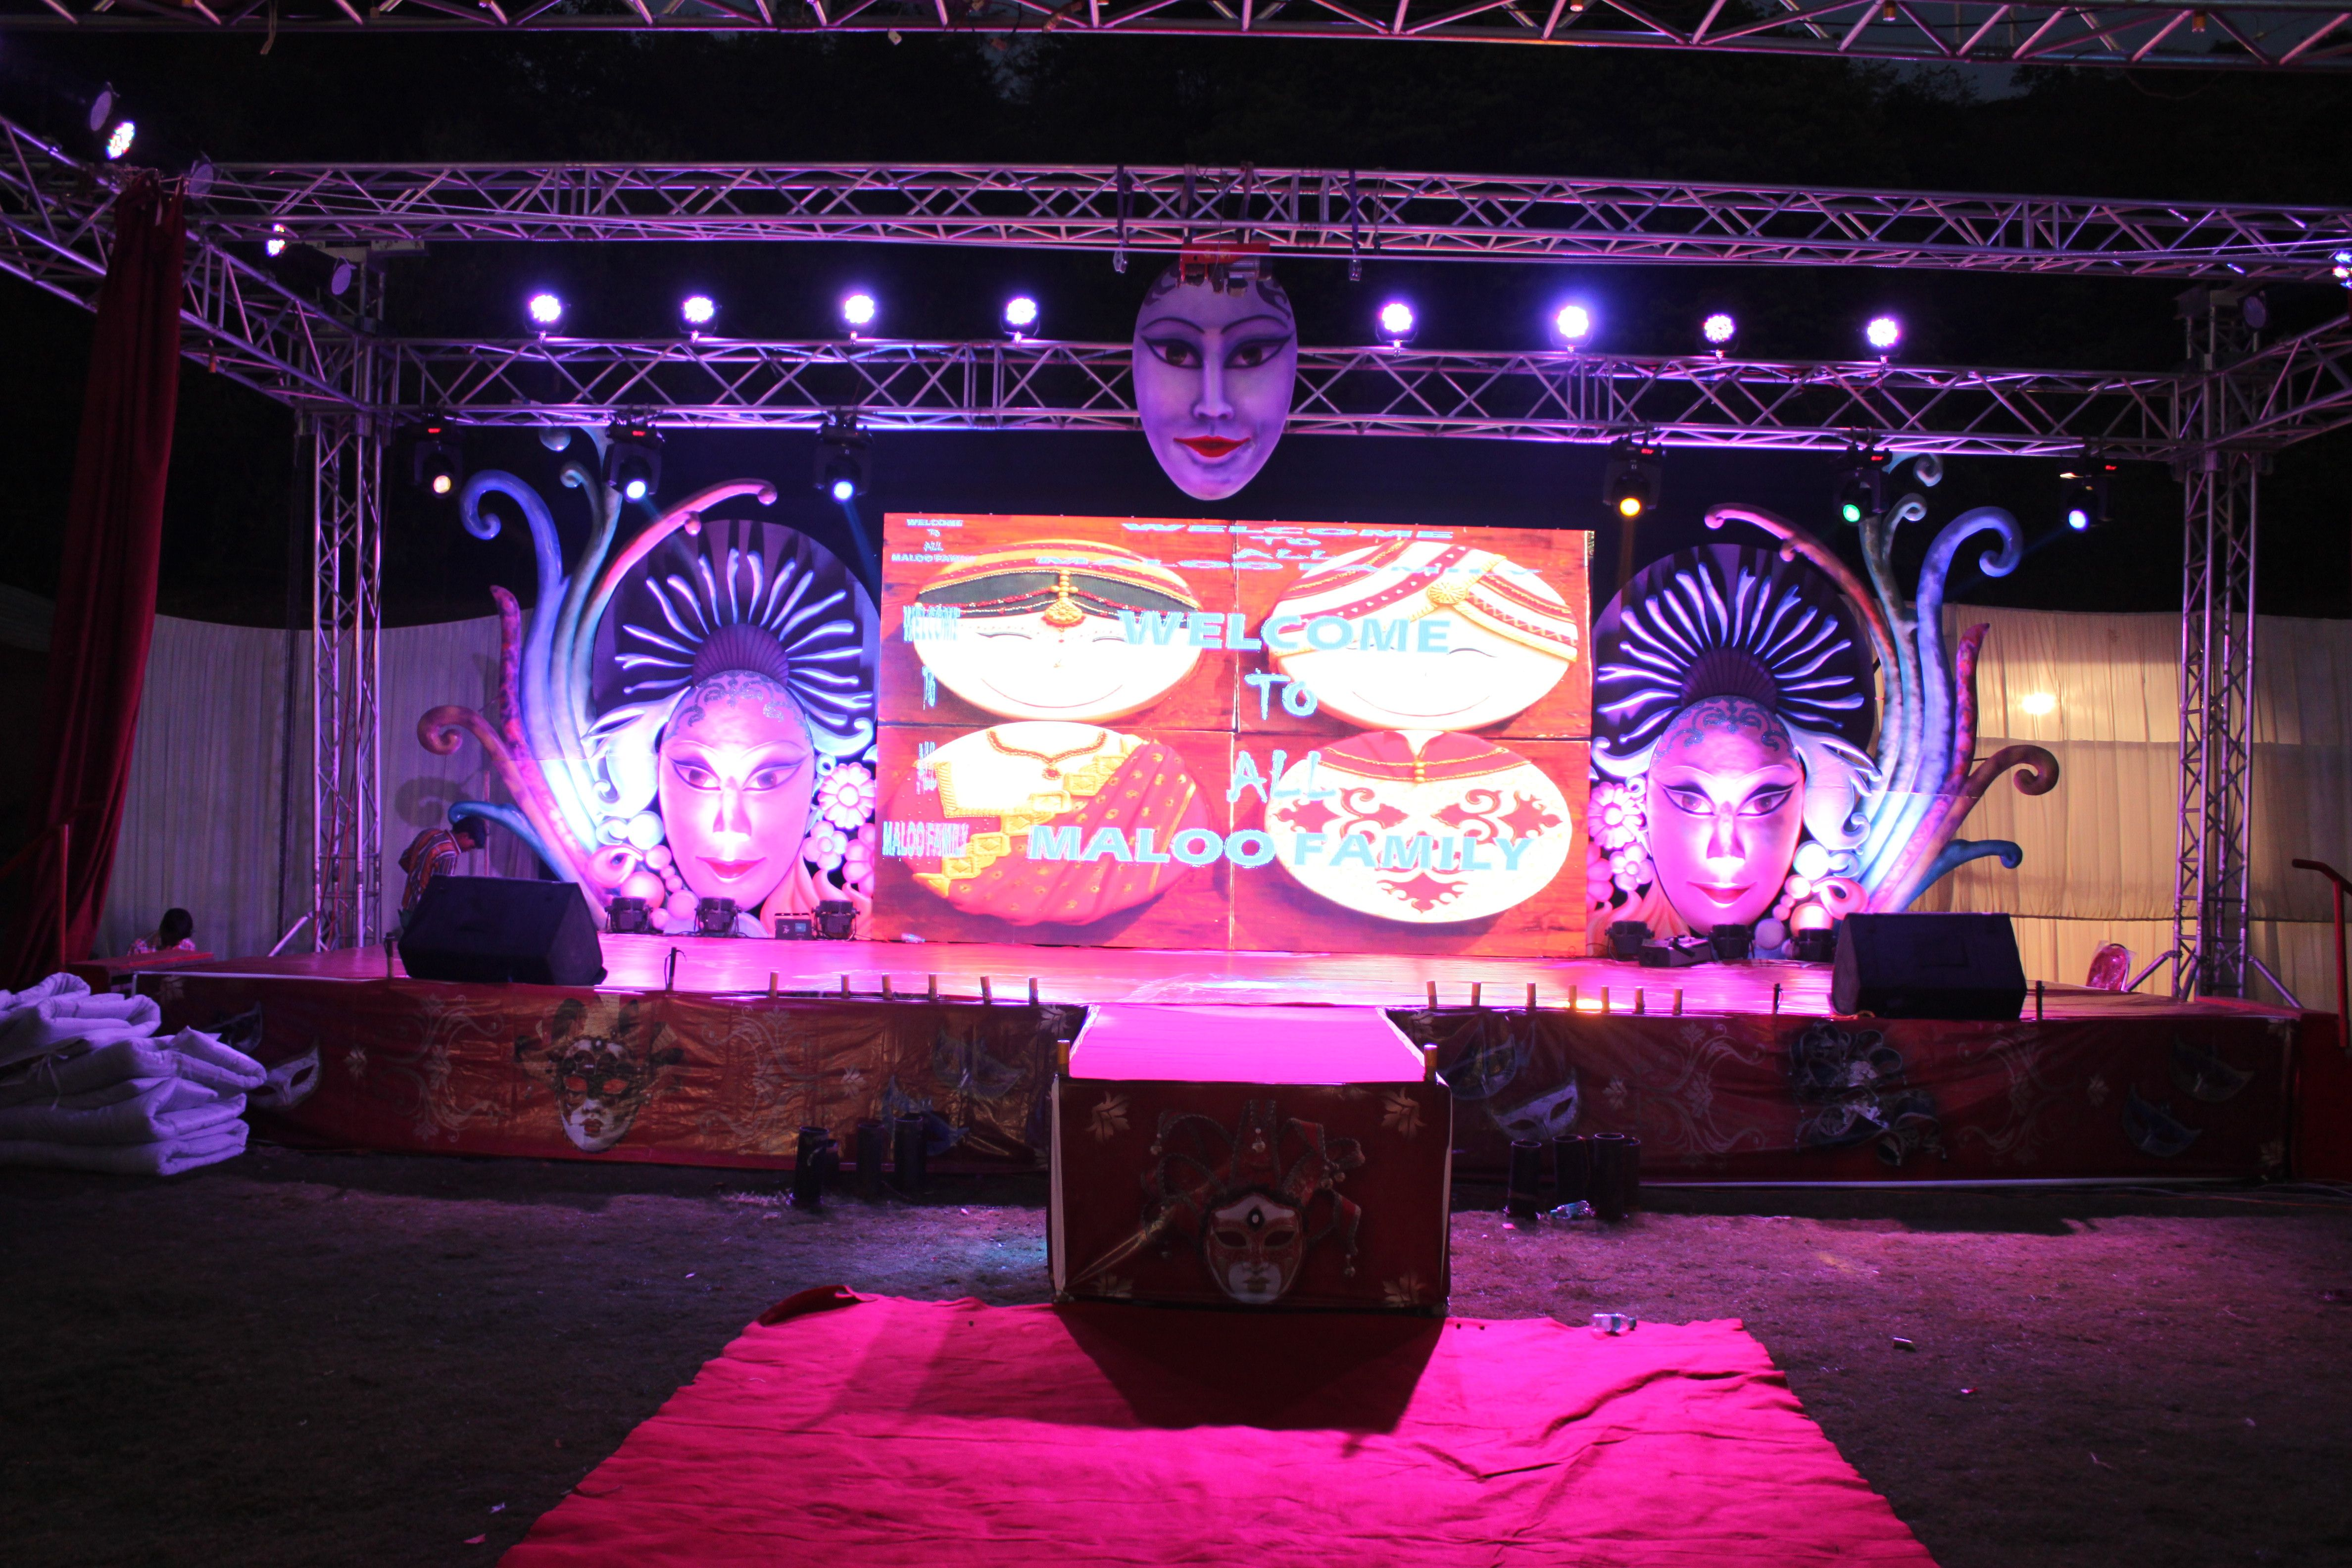 Carnival theme wedding Sangeet will surely add joy, fun and colors ...